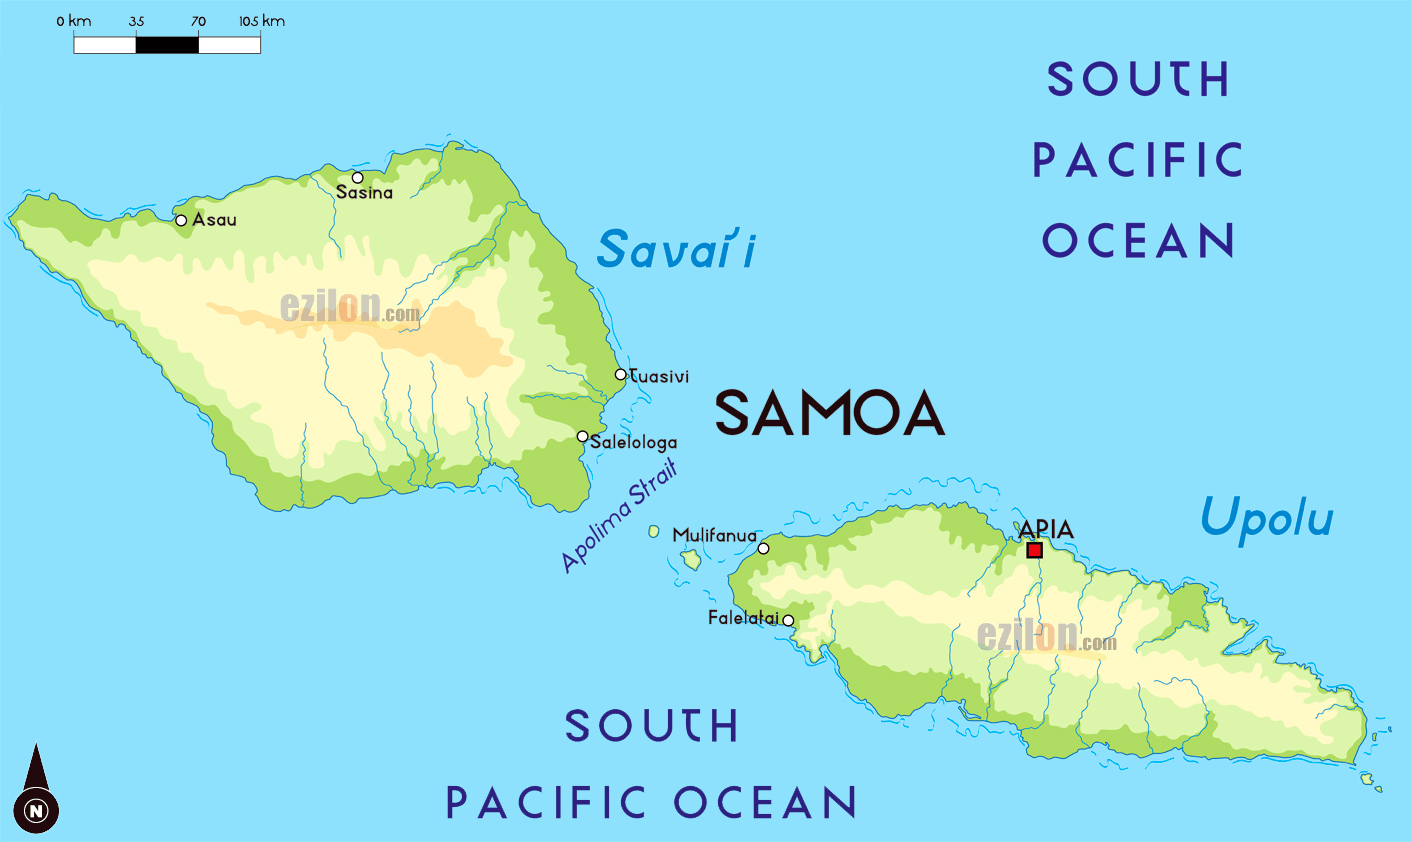 Large physical map of Samoa with major cities | Samoa ... on transjordan on the map, seborga on the map, philippines on the map, sao tome and principe on the map, virgin islands on the map, aland on the map, kingman reef on the map, japan on the map, punjab india on the map, the gambia on the map, alaska on the map, micronesia on the map, saint helena on the map, guam on the map, spratly islands on the map, malay peninsula on the map, solomon island on the map, jordan on the map, kuril islands on the map, east africa on the map,